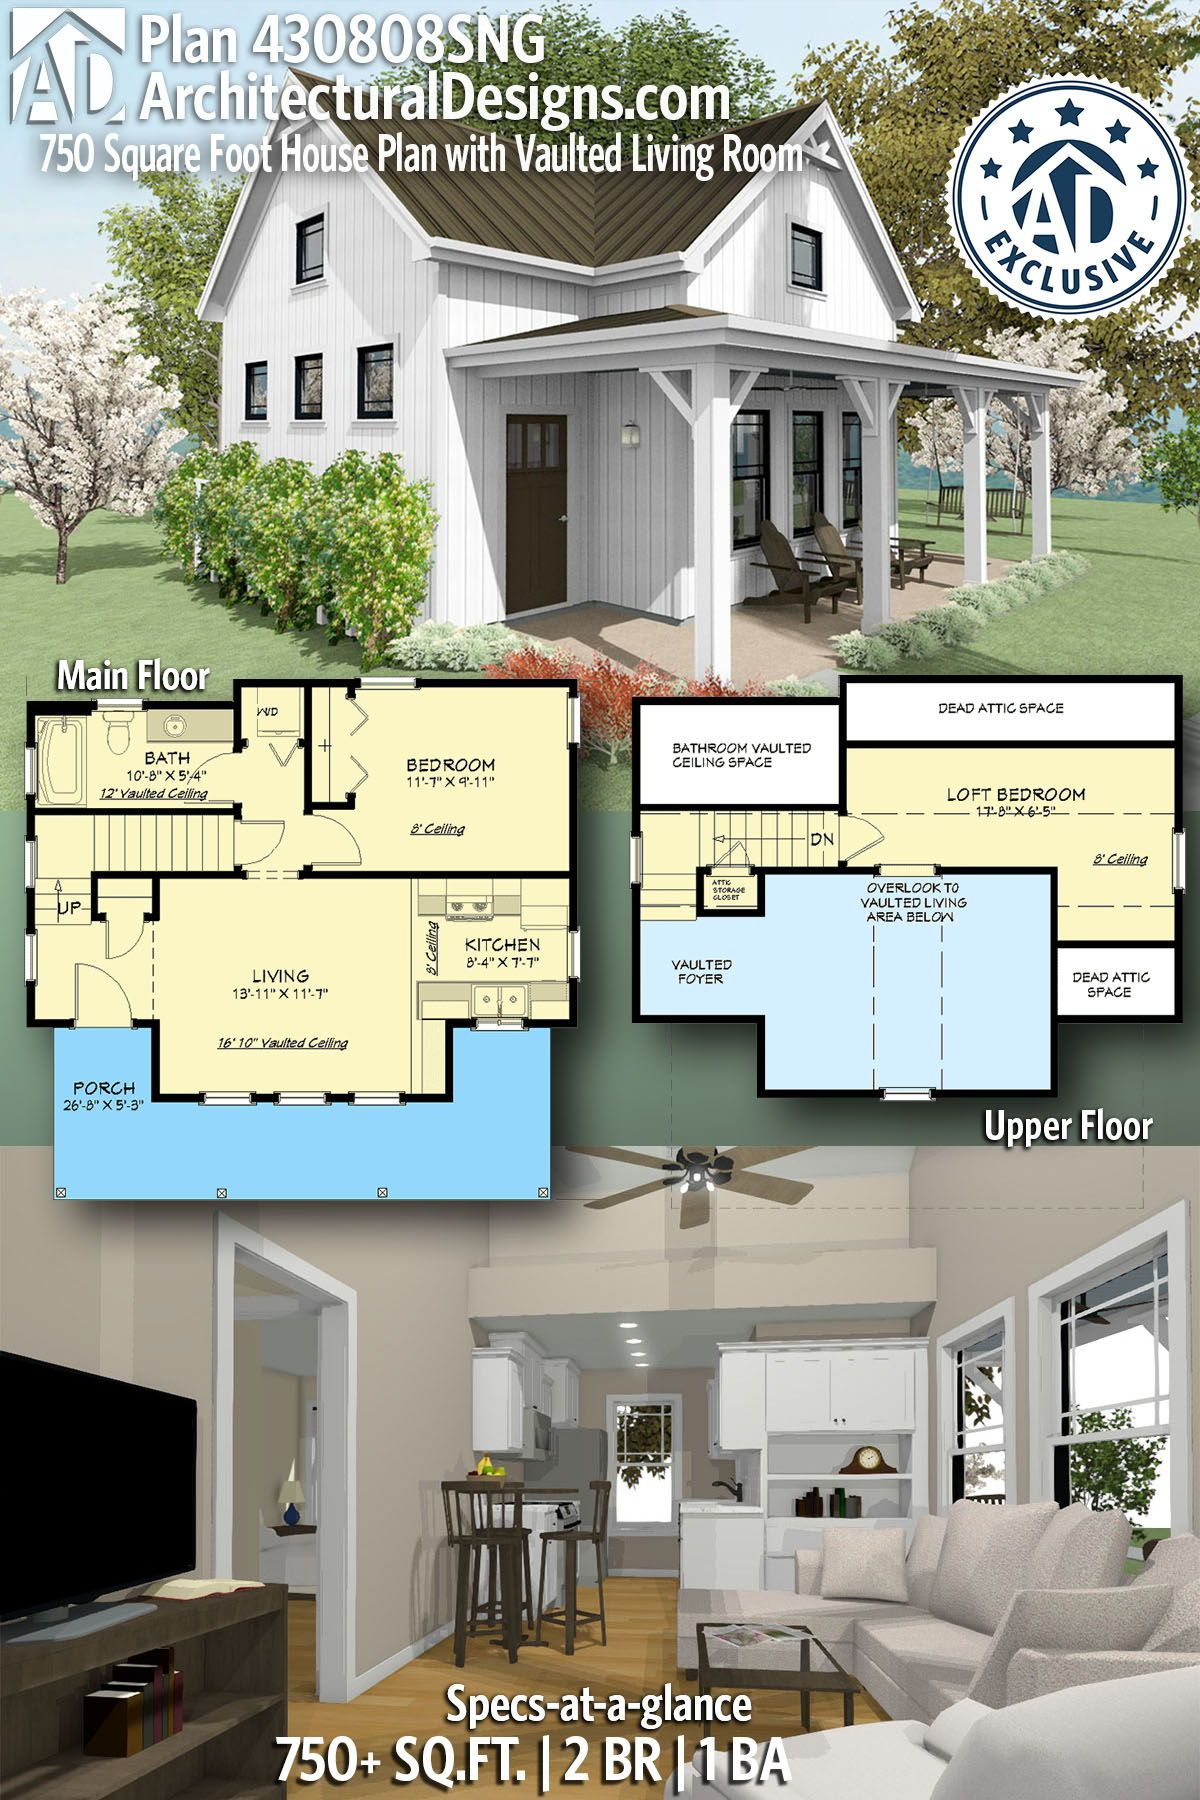 Plan 430808sng 750 Square Foot Cottage House Plan With Vaulted Living Room In 2020 Cottage House Plans Small Cottage House Plans House Plans